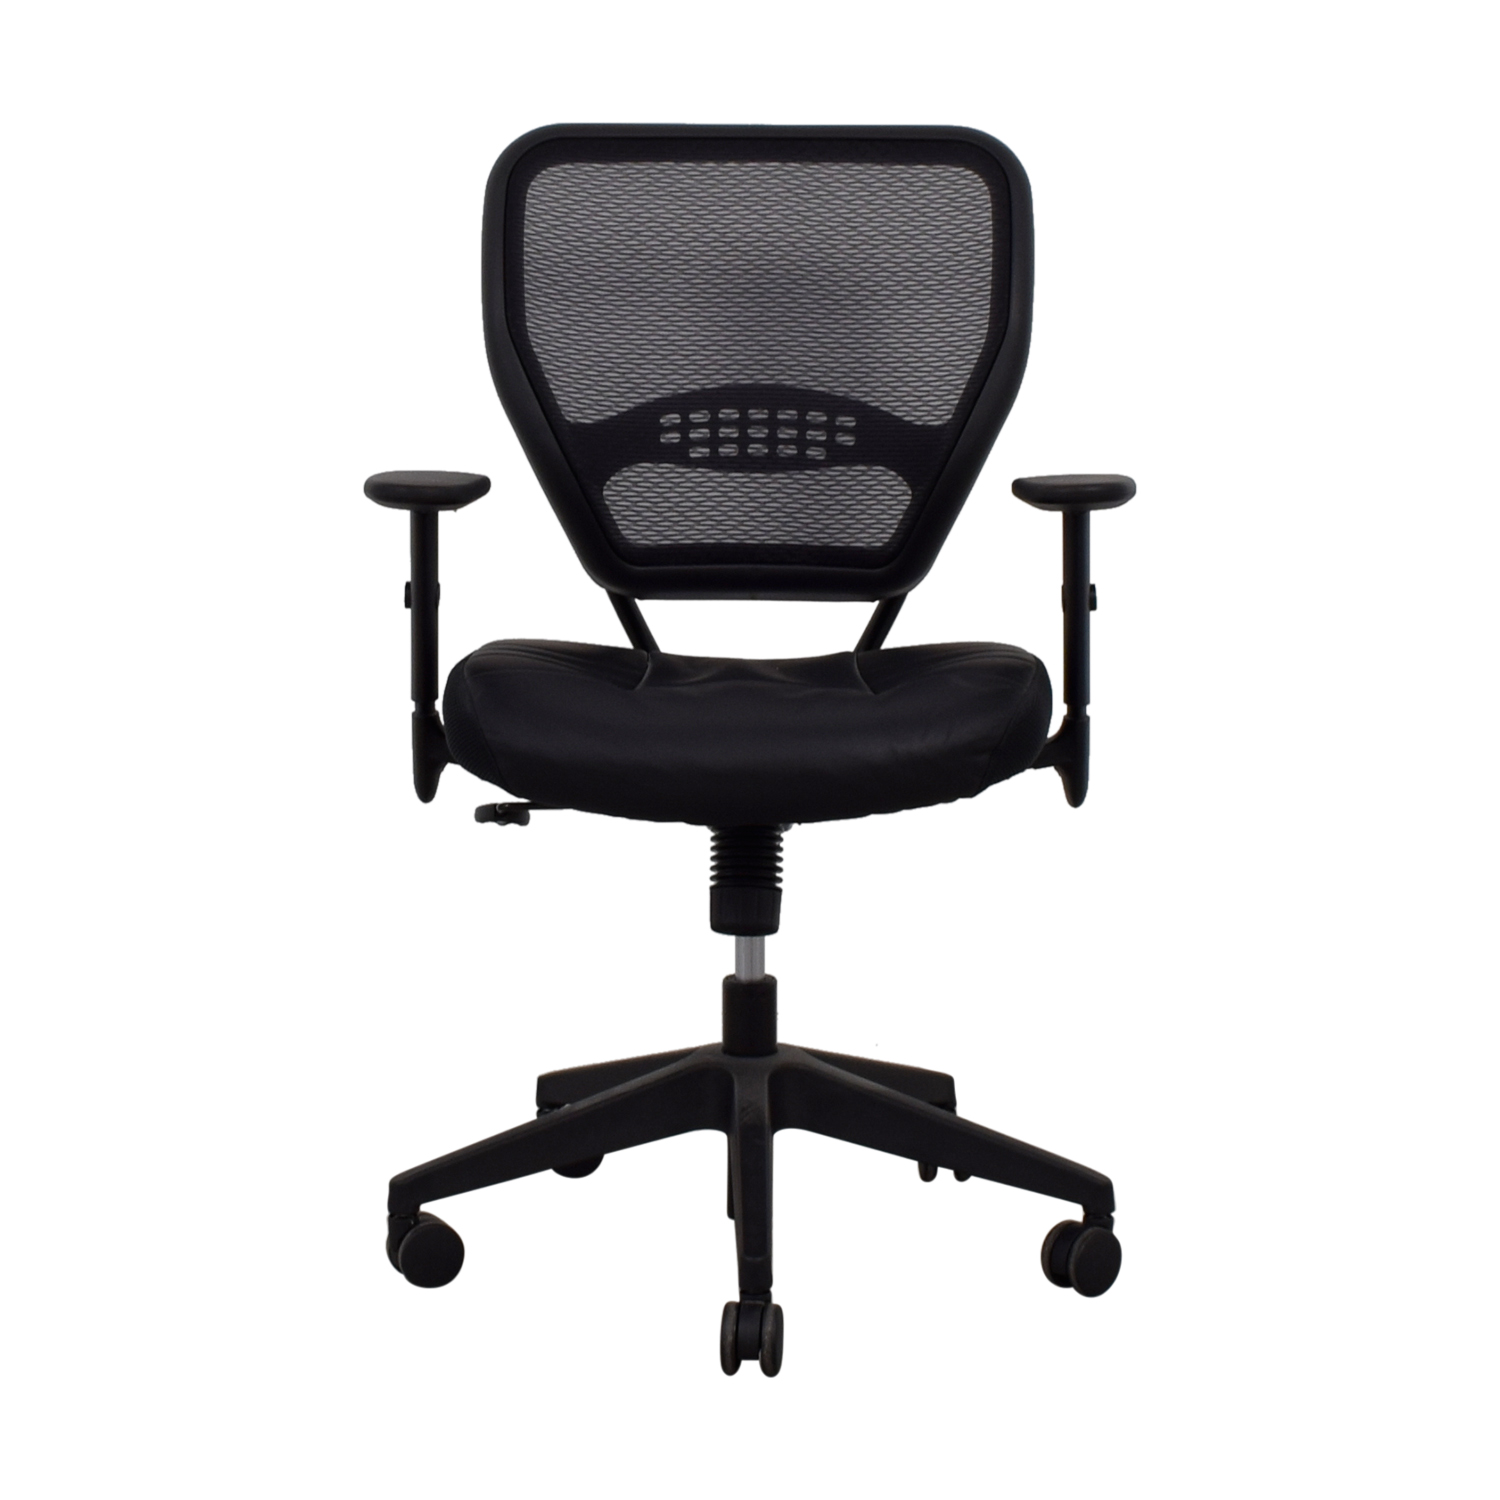 Office Star Office Star AirGrid Black Office Chair coupon